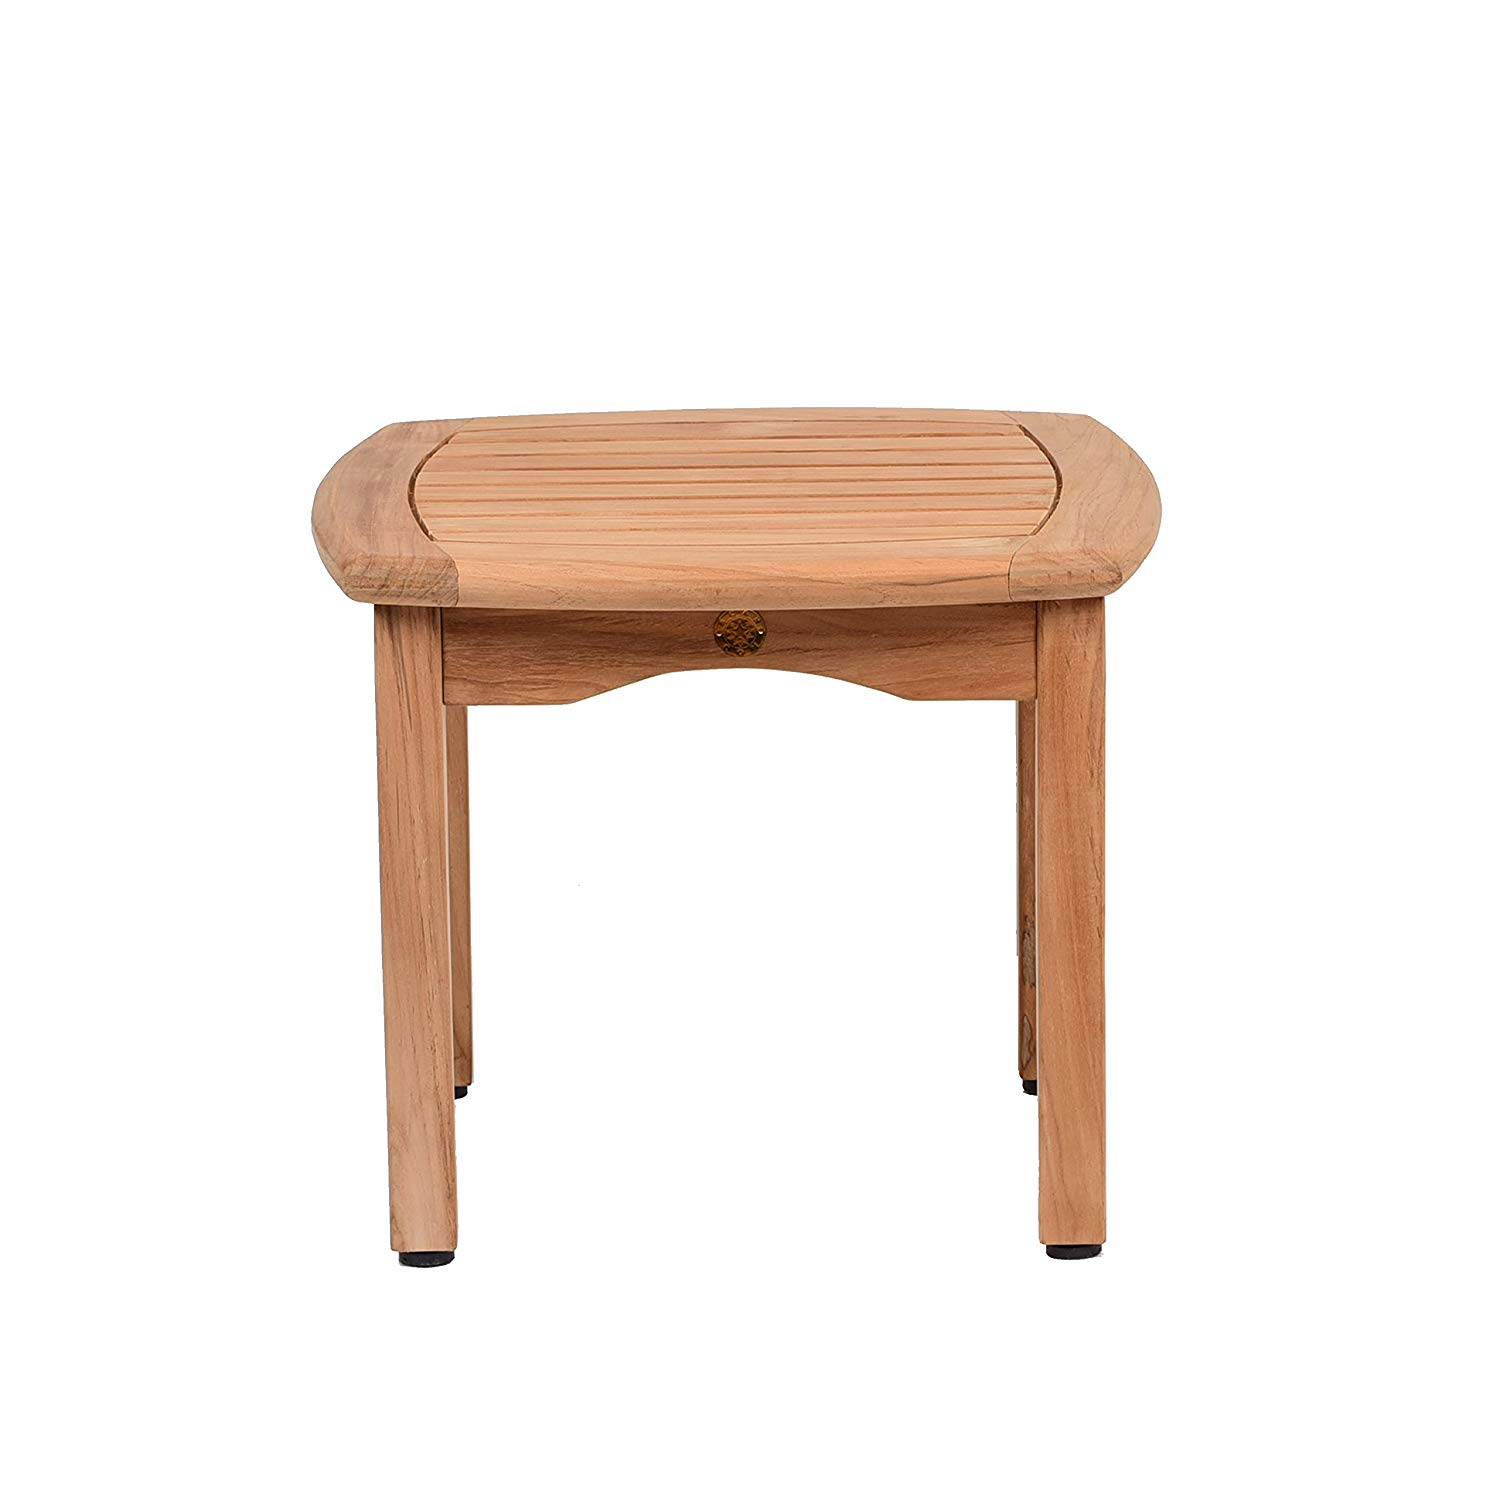 teak papaya square side table garden outdoor accent round cherry wood end tables clear acrylic coffee ikea pulaski furniture mawr metal inexpensive rattan inside barn doors